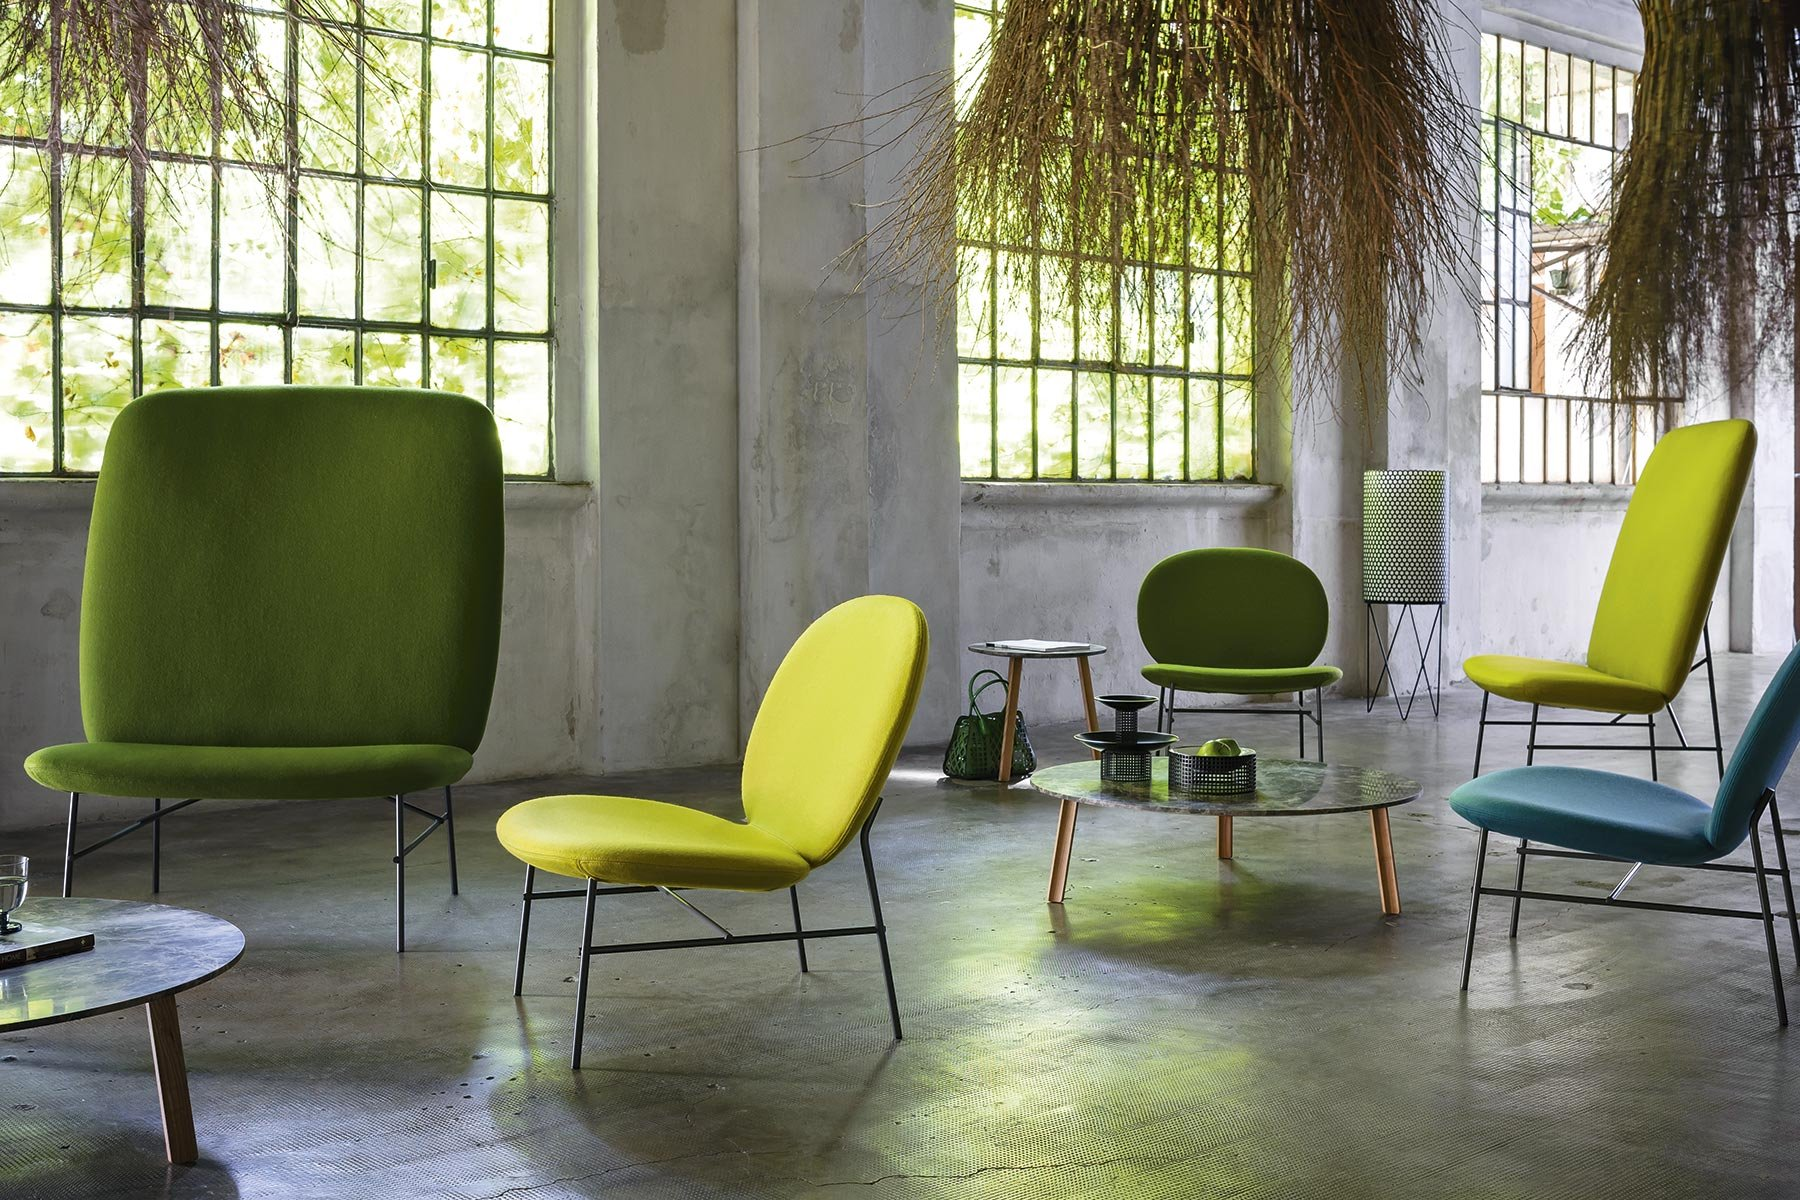 Kelly H Chair from Tacchini, designed by Claesson Koivisto Rune